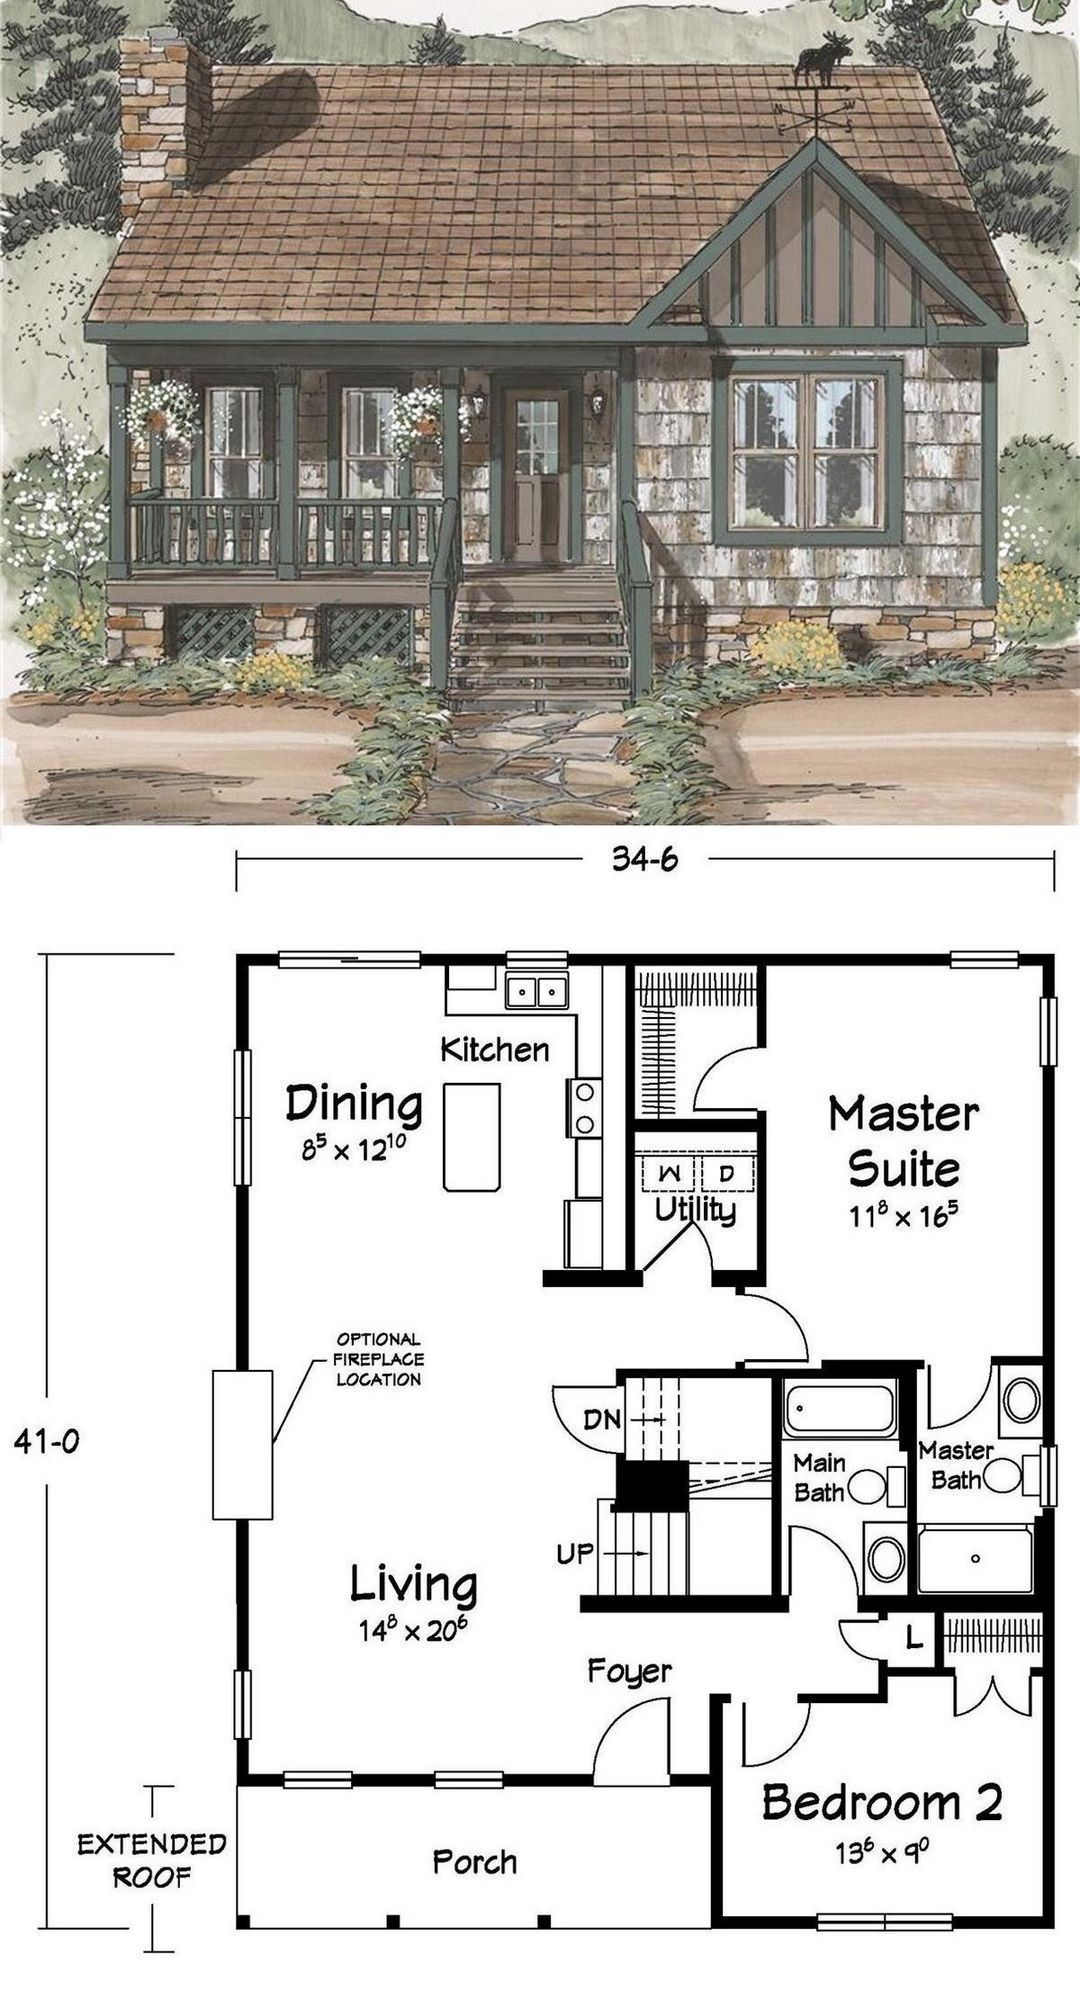 28 Facts About Cozy House Exterior Small 86 Freehomeideas Com Cottage Plan House Layouts Small House Layout